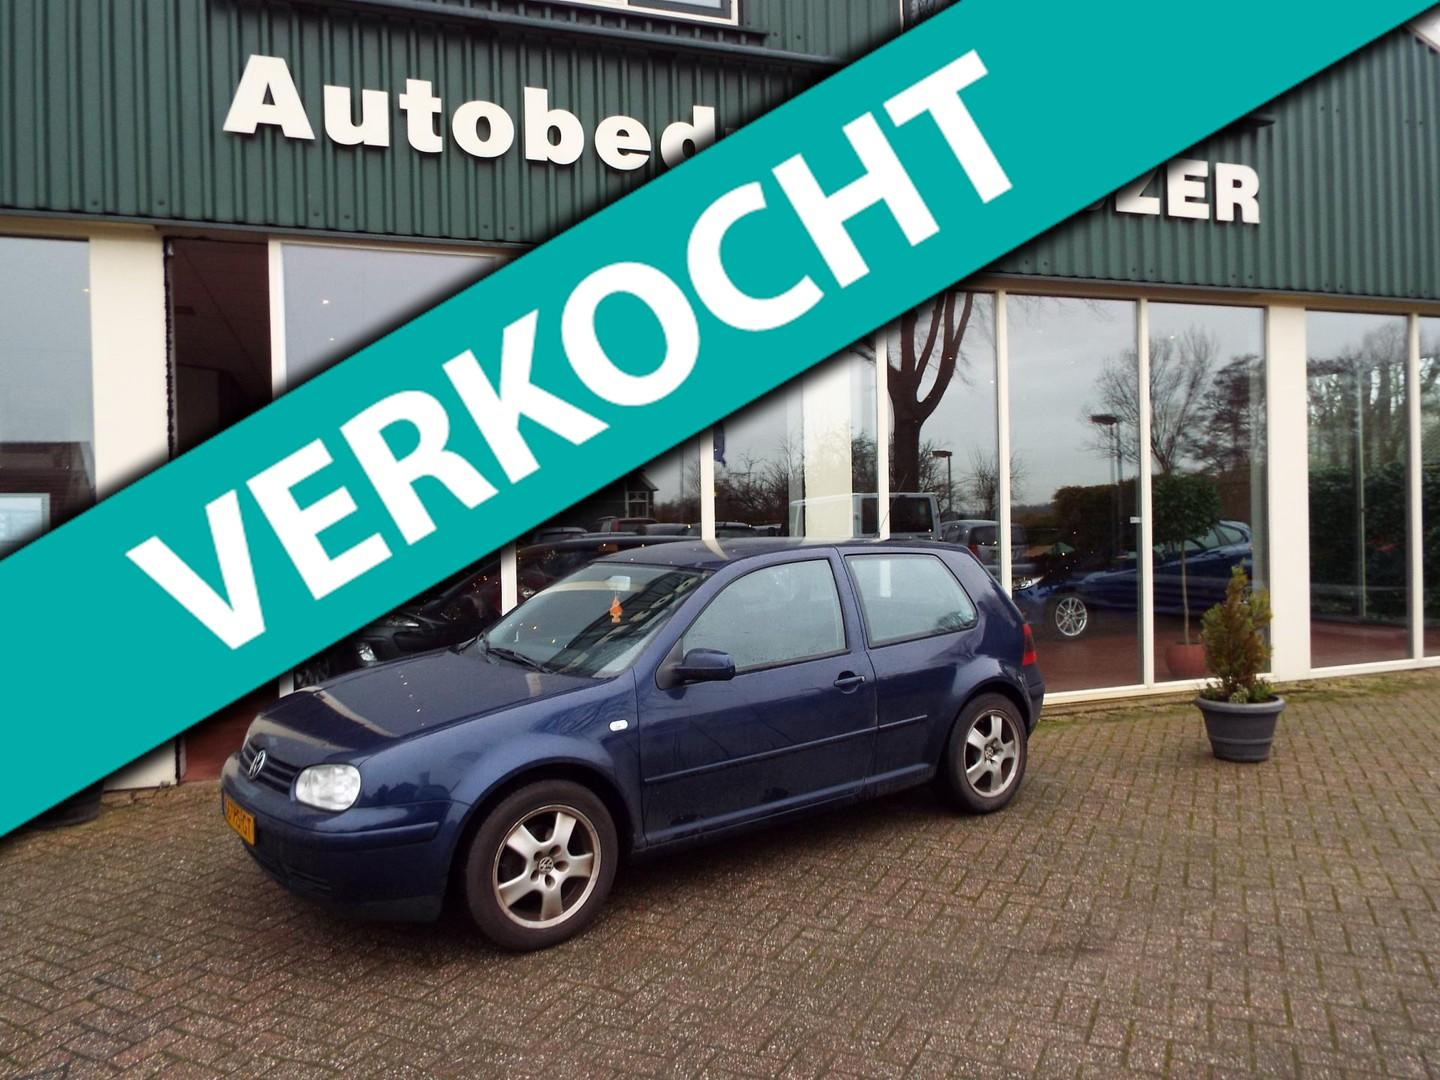 Volkswagen Golf 1.6-16v comfortline climate controle-cruise-nap